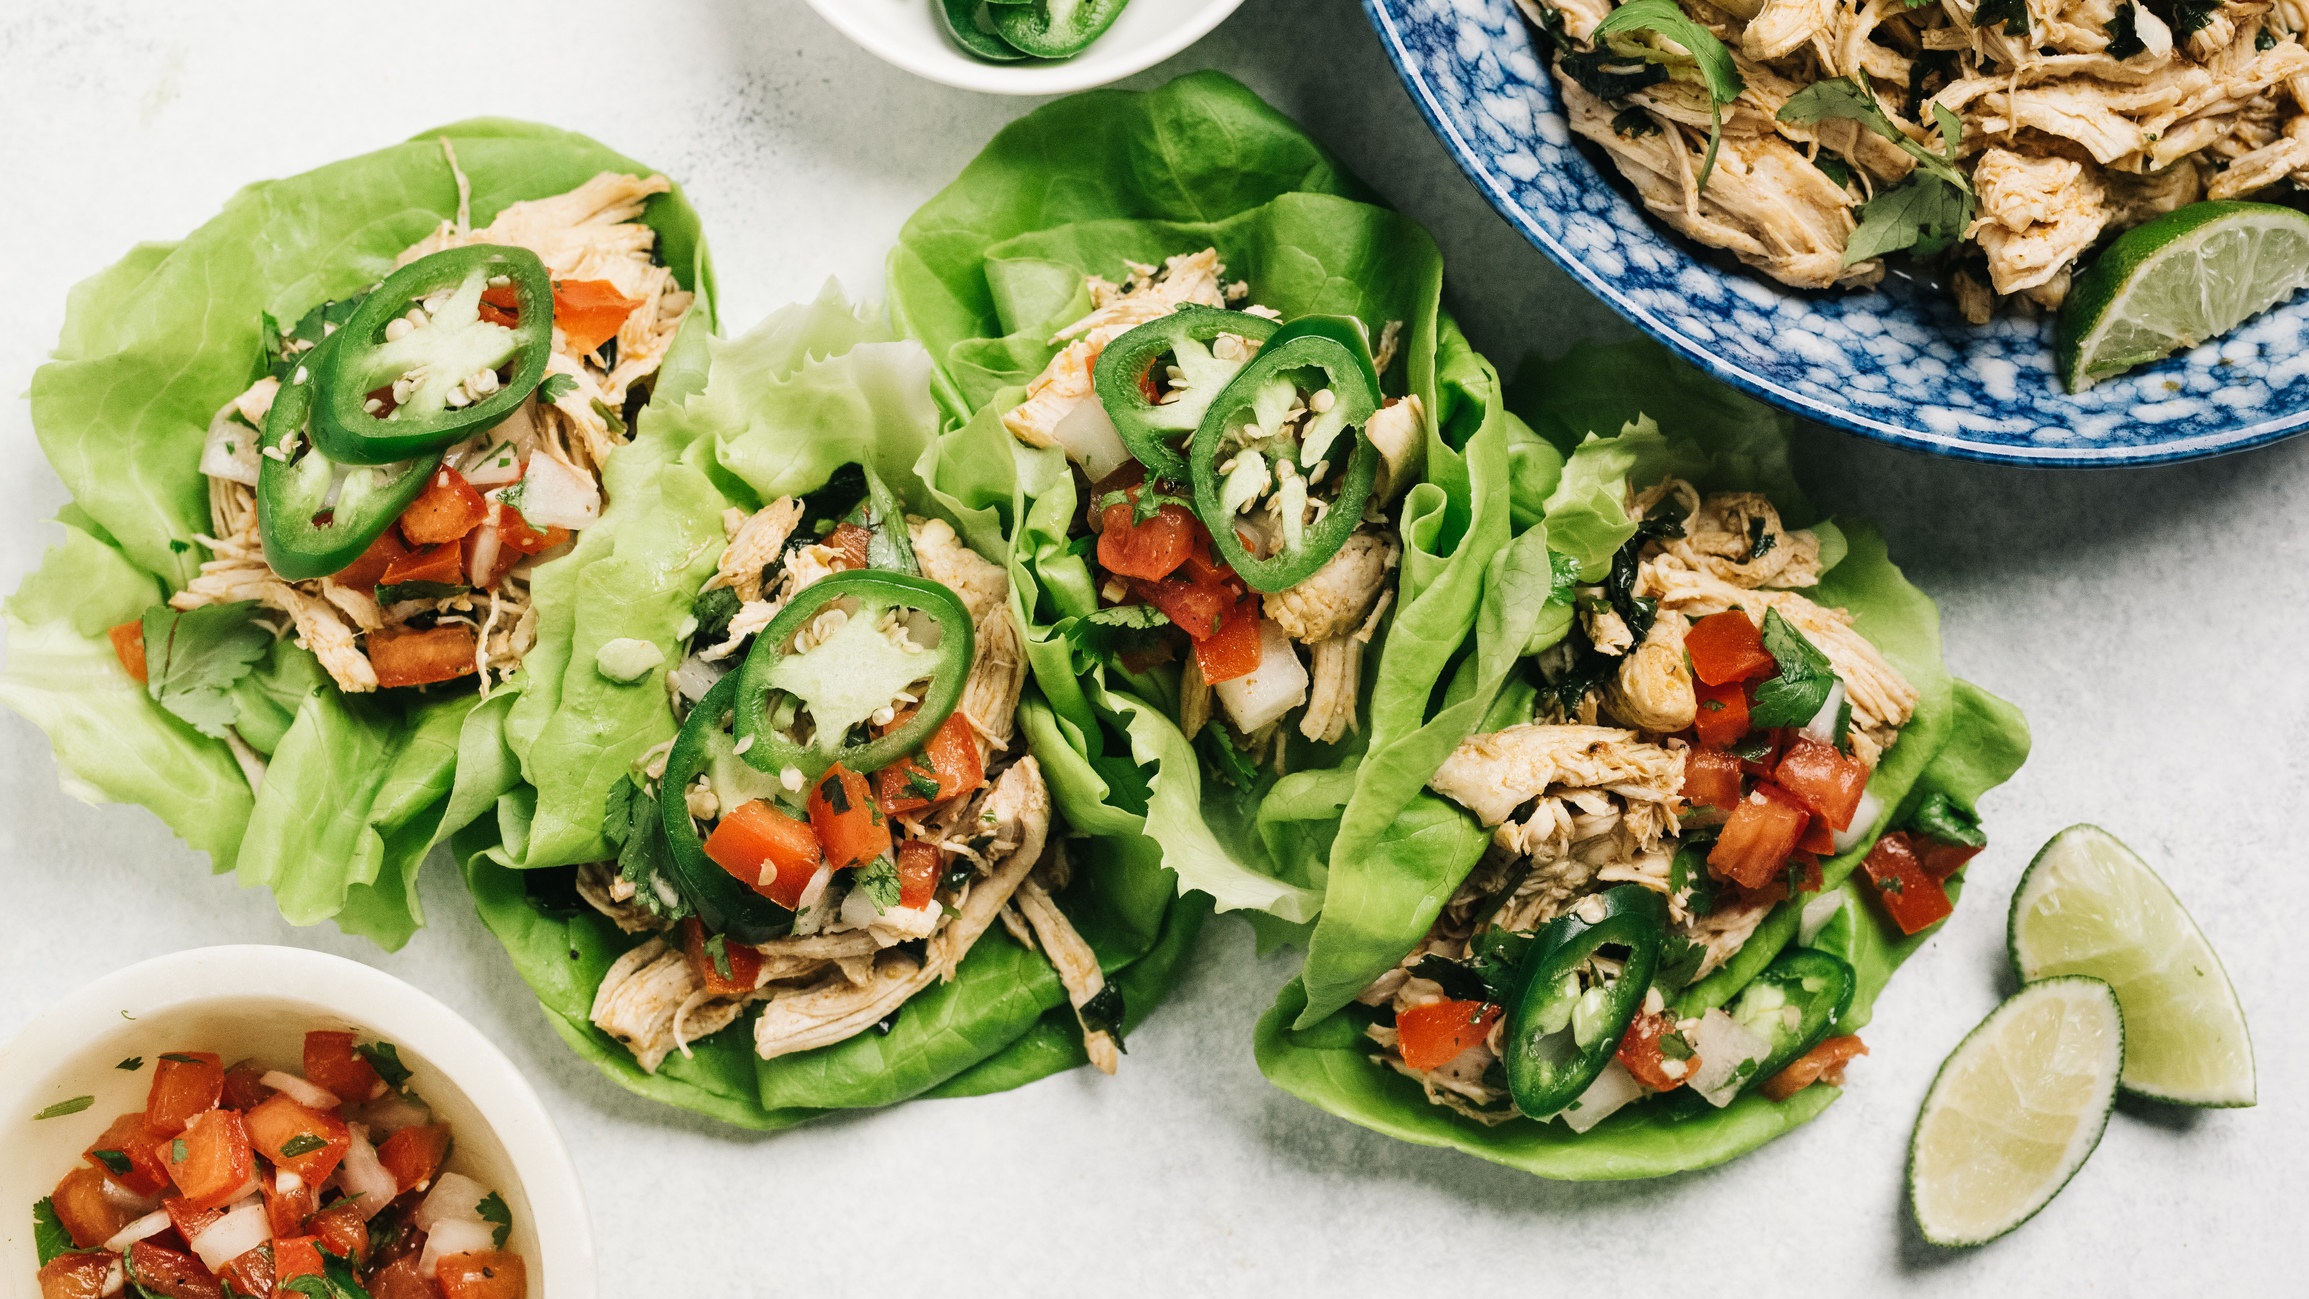 Lettuce wraps made from shredded chicken topped with veggies.